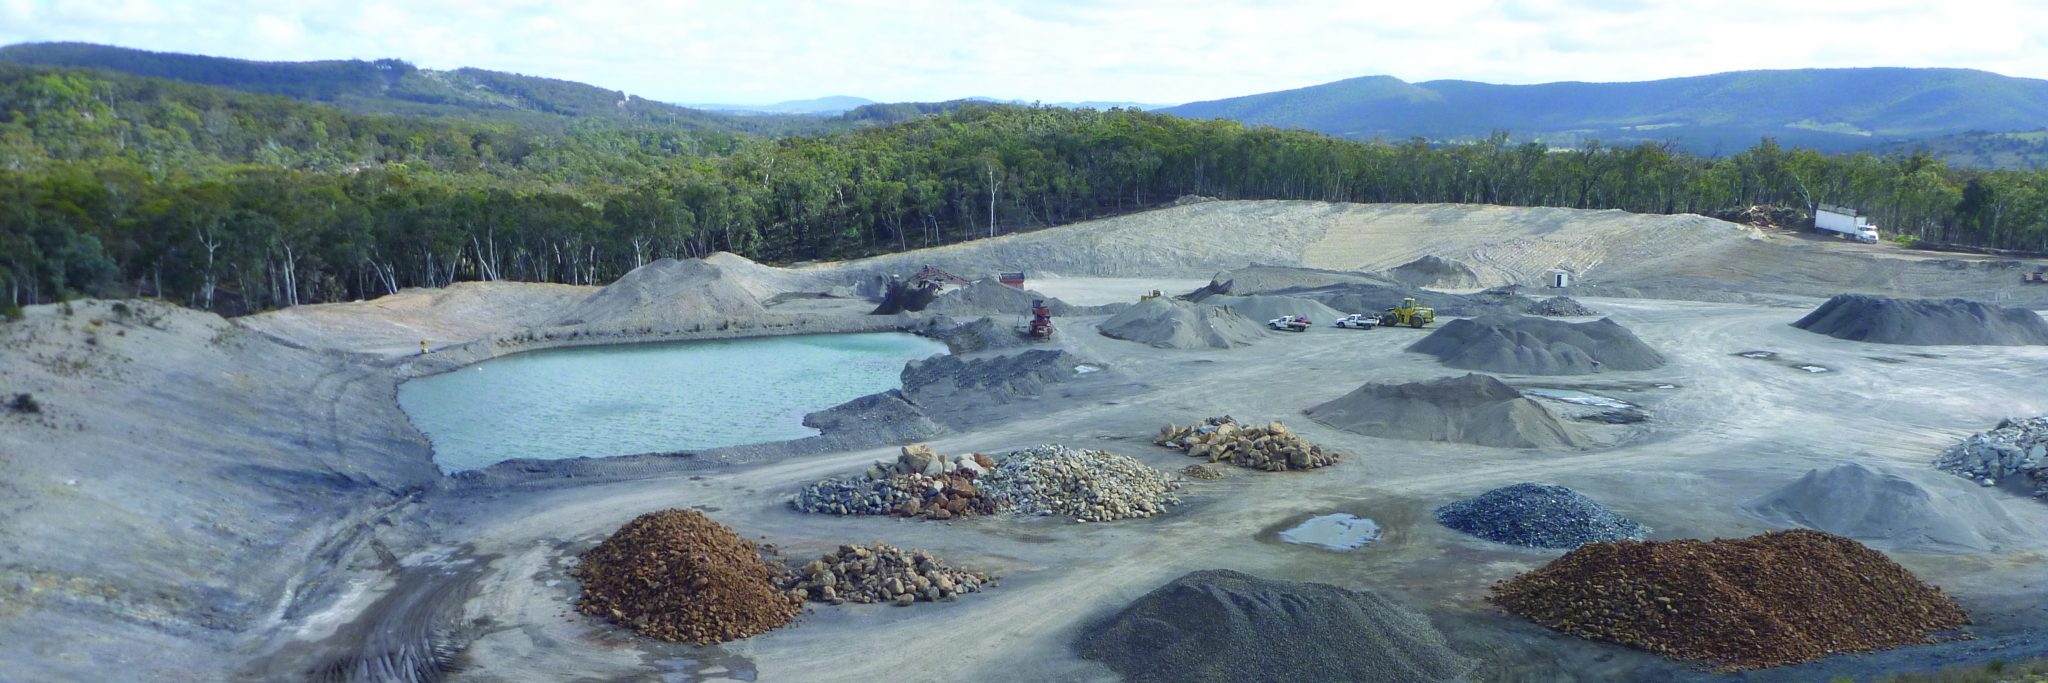 Reusing Disused Quarries: A Growing Opportunity 1